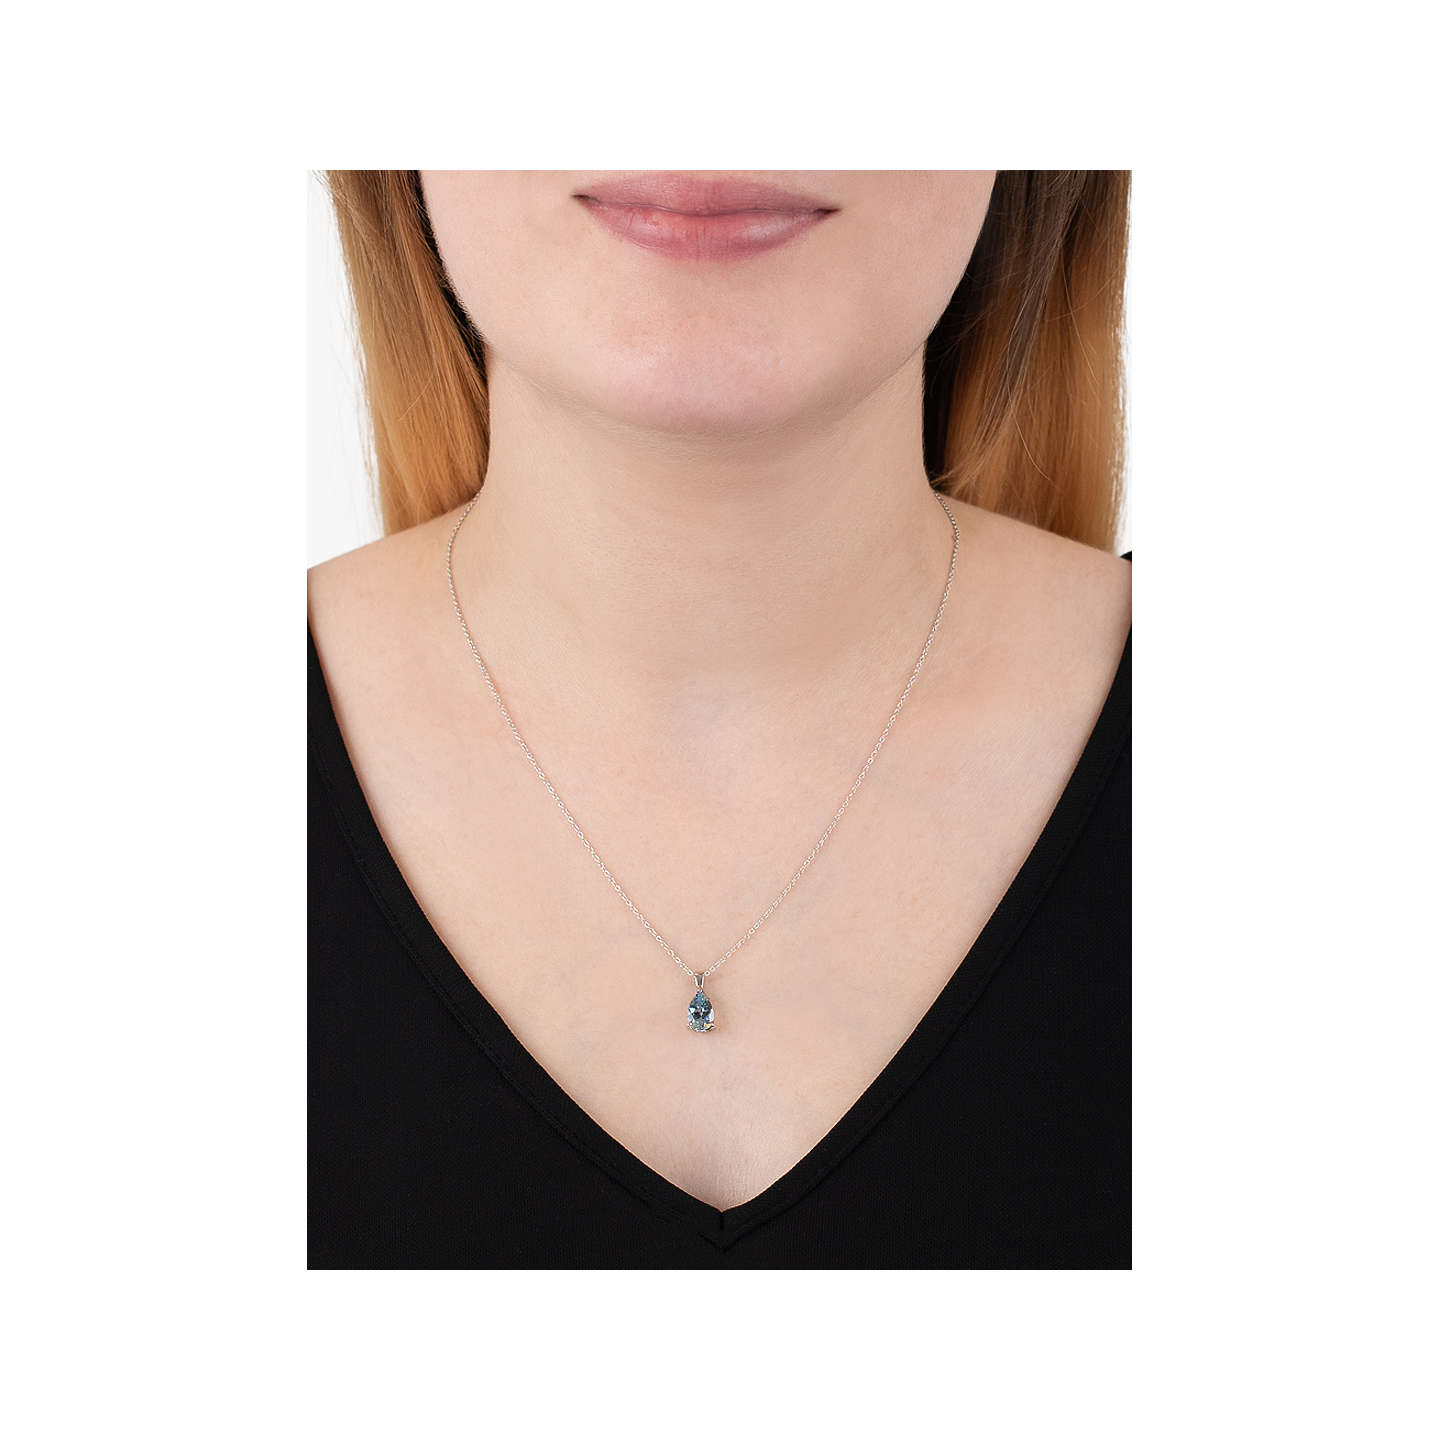 bling cz color vintage inch hl blue style pendant my silver necklace teardrop jewelry